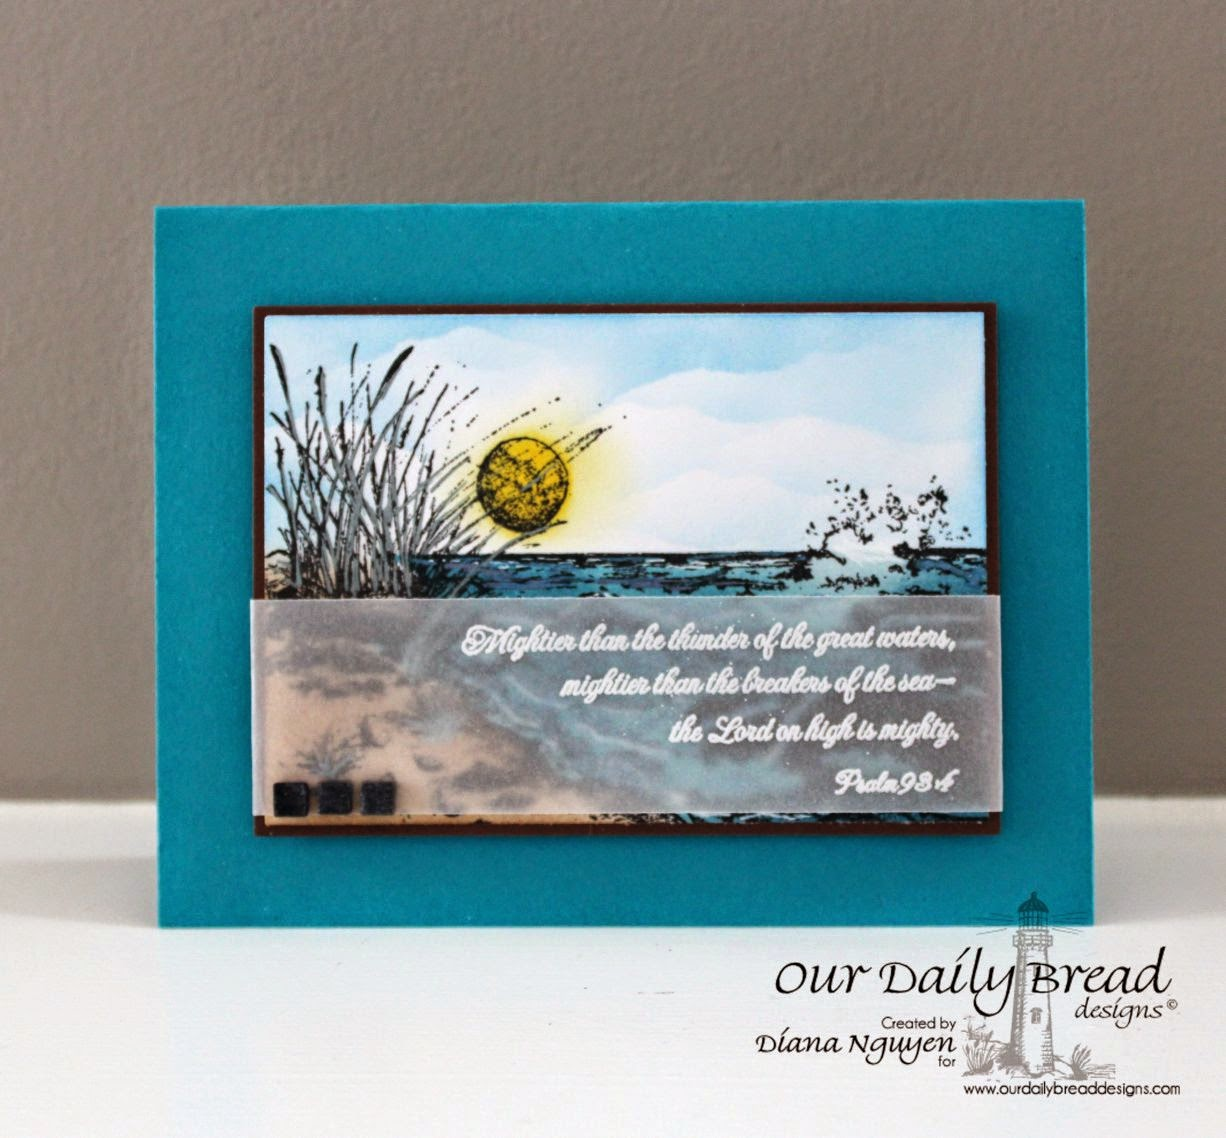 Diana Nguyen, Our Daily Bread Designs, the Mighty sea, scripture, card